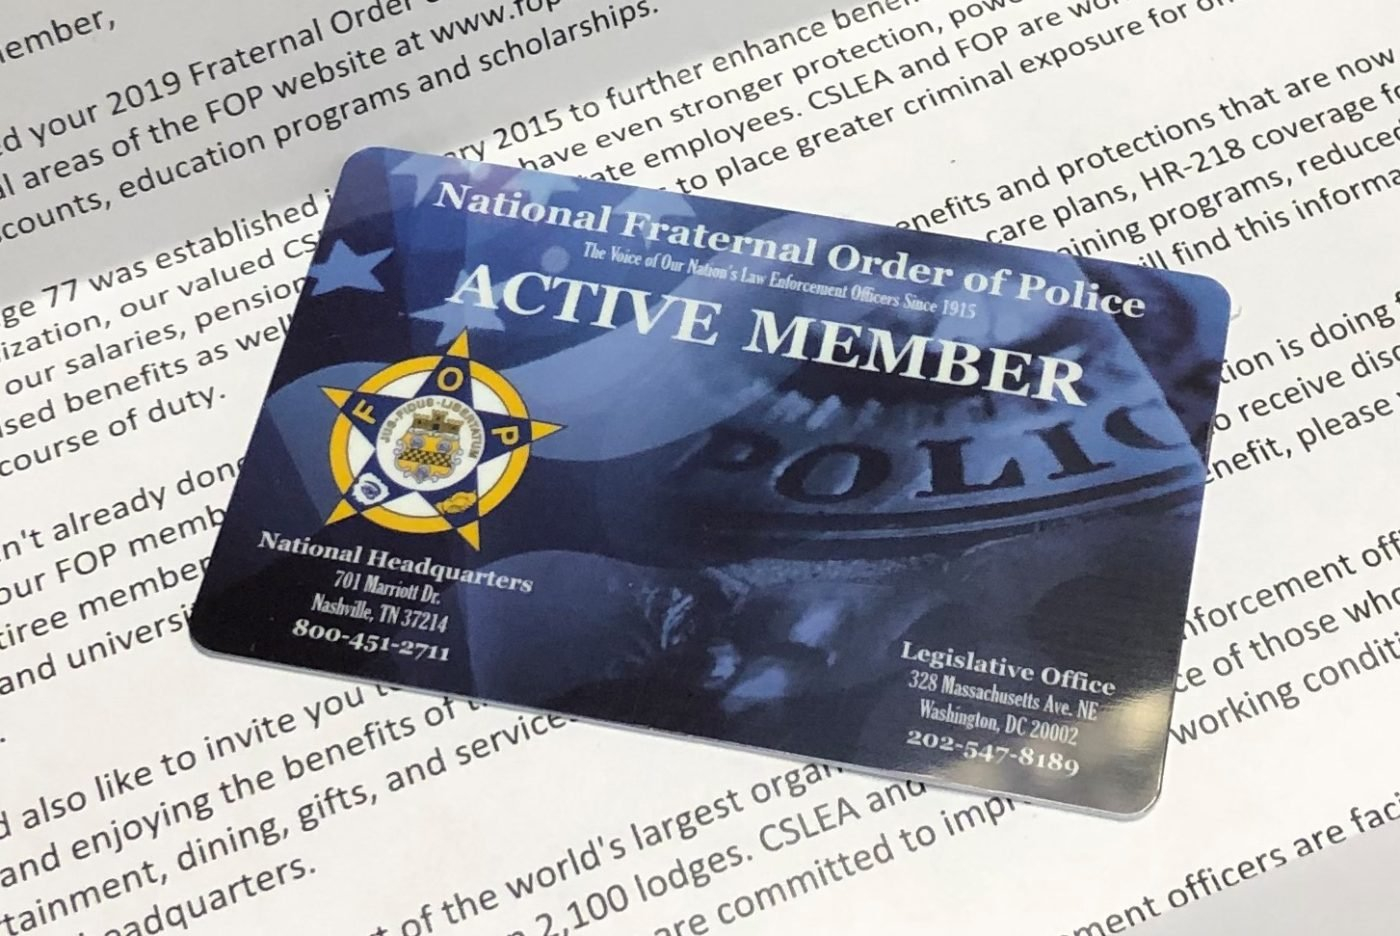 2019 Fop Membership Cards - California Statewide Law Enforcement Fop Lodge 7 Calendar 2019